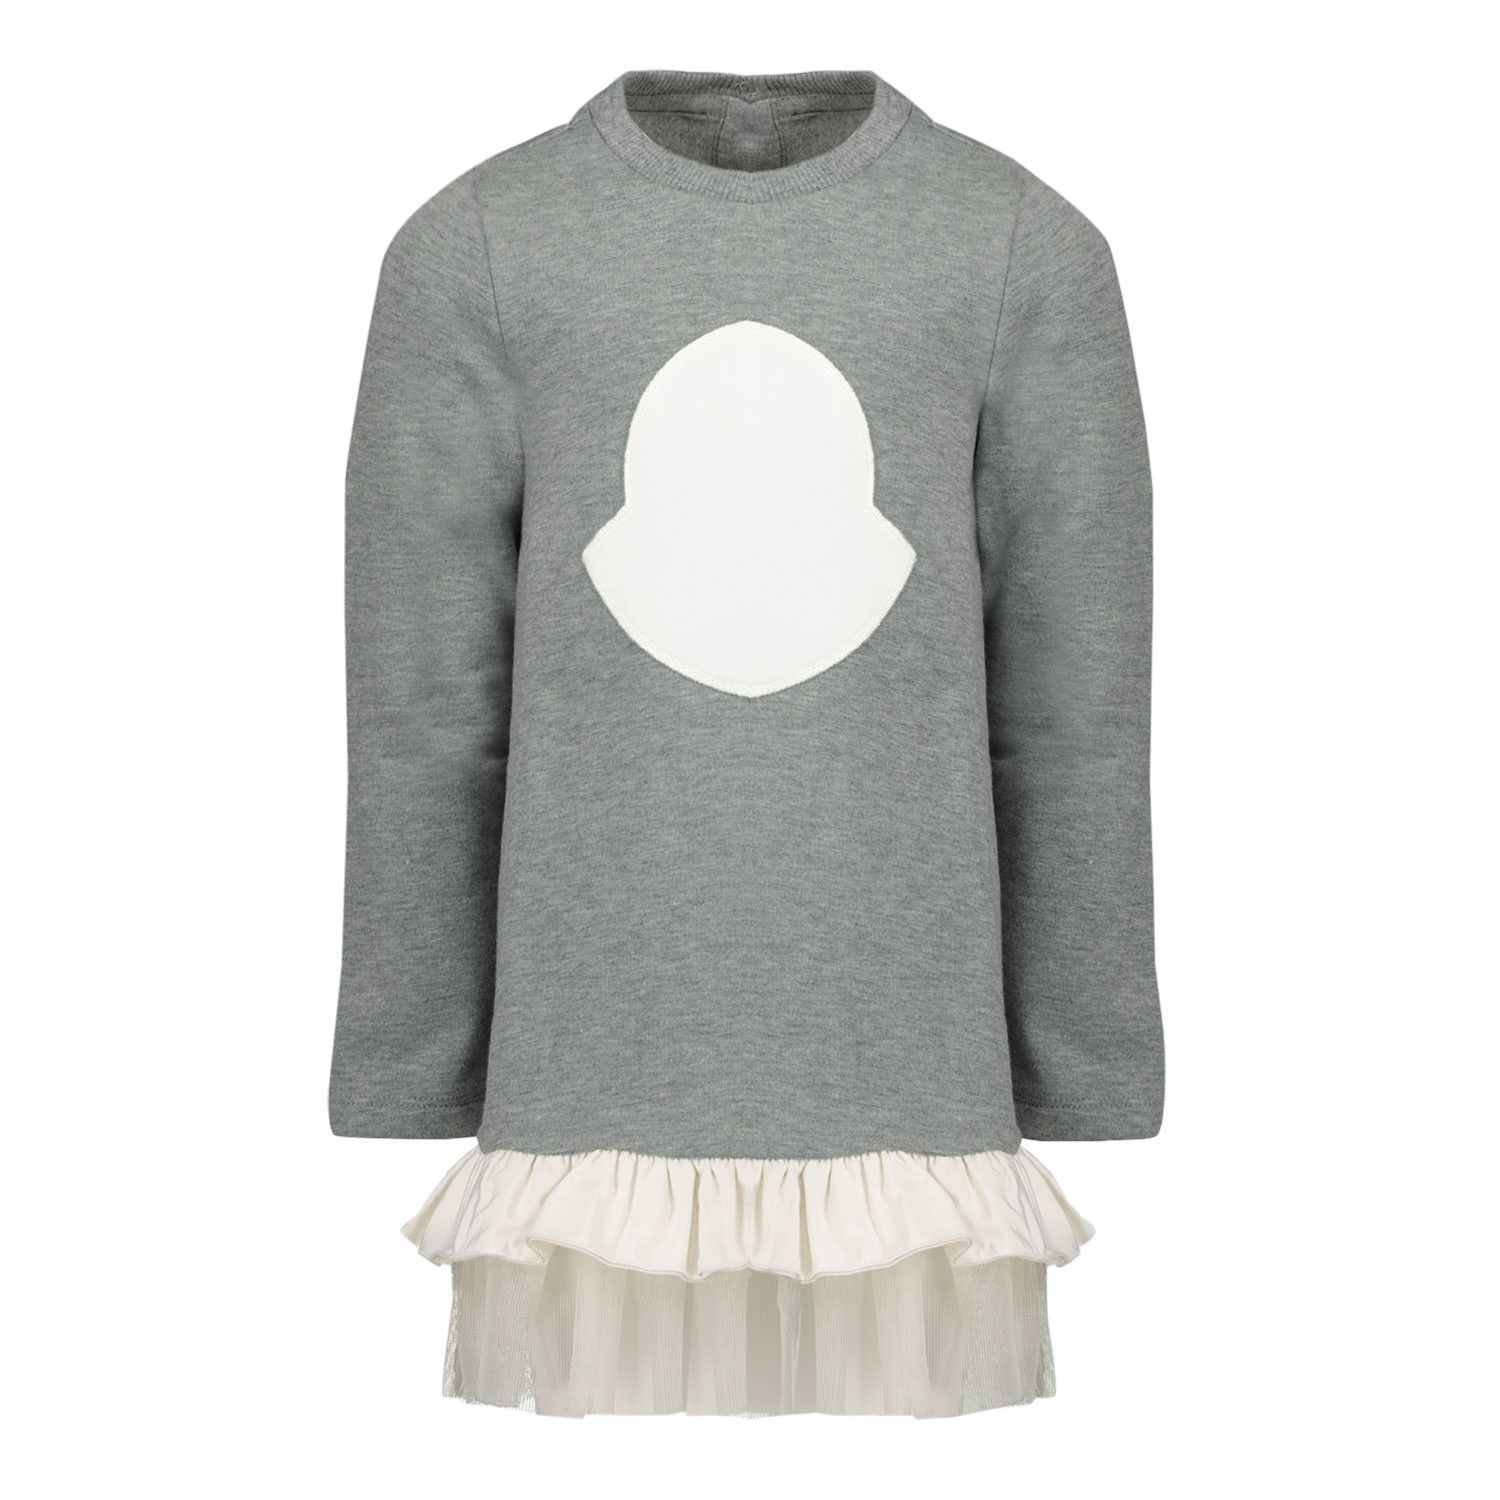 Picture of Moncler 8I71710 baby dress light gray